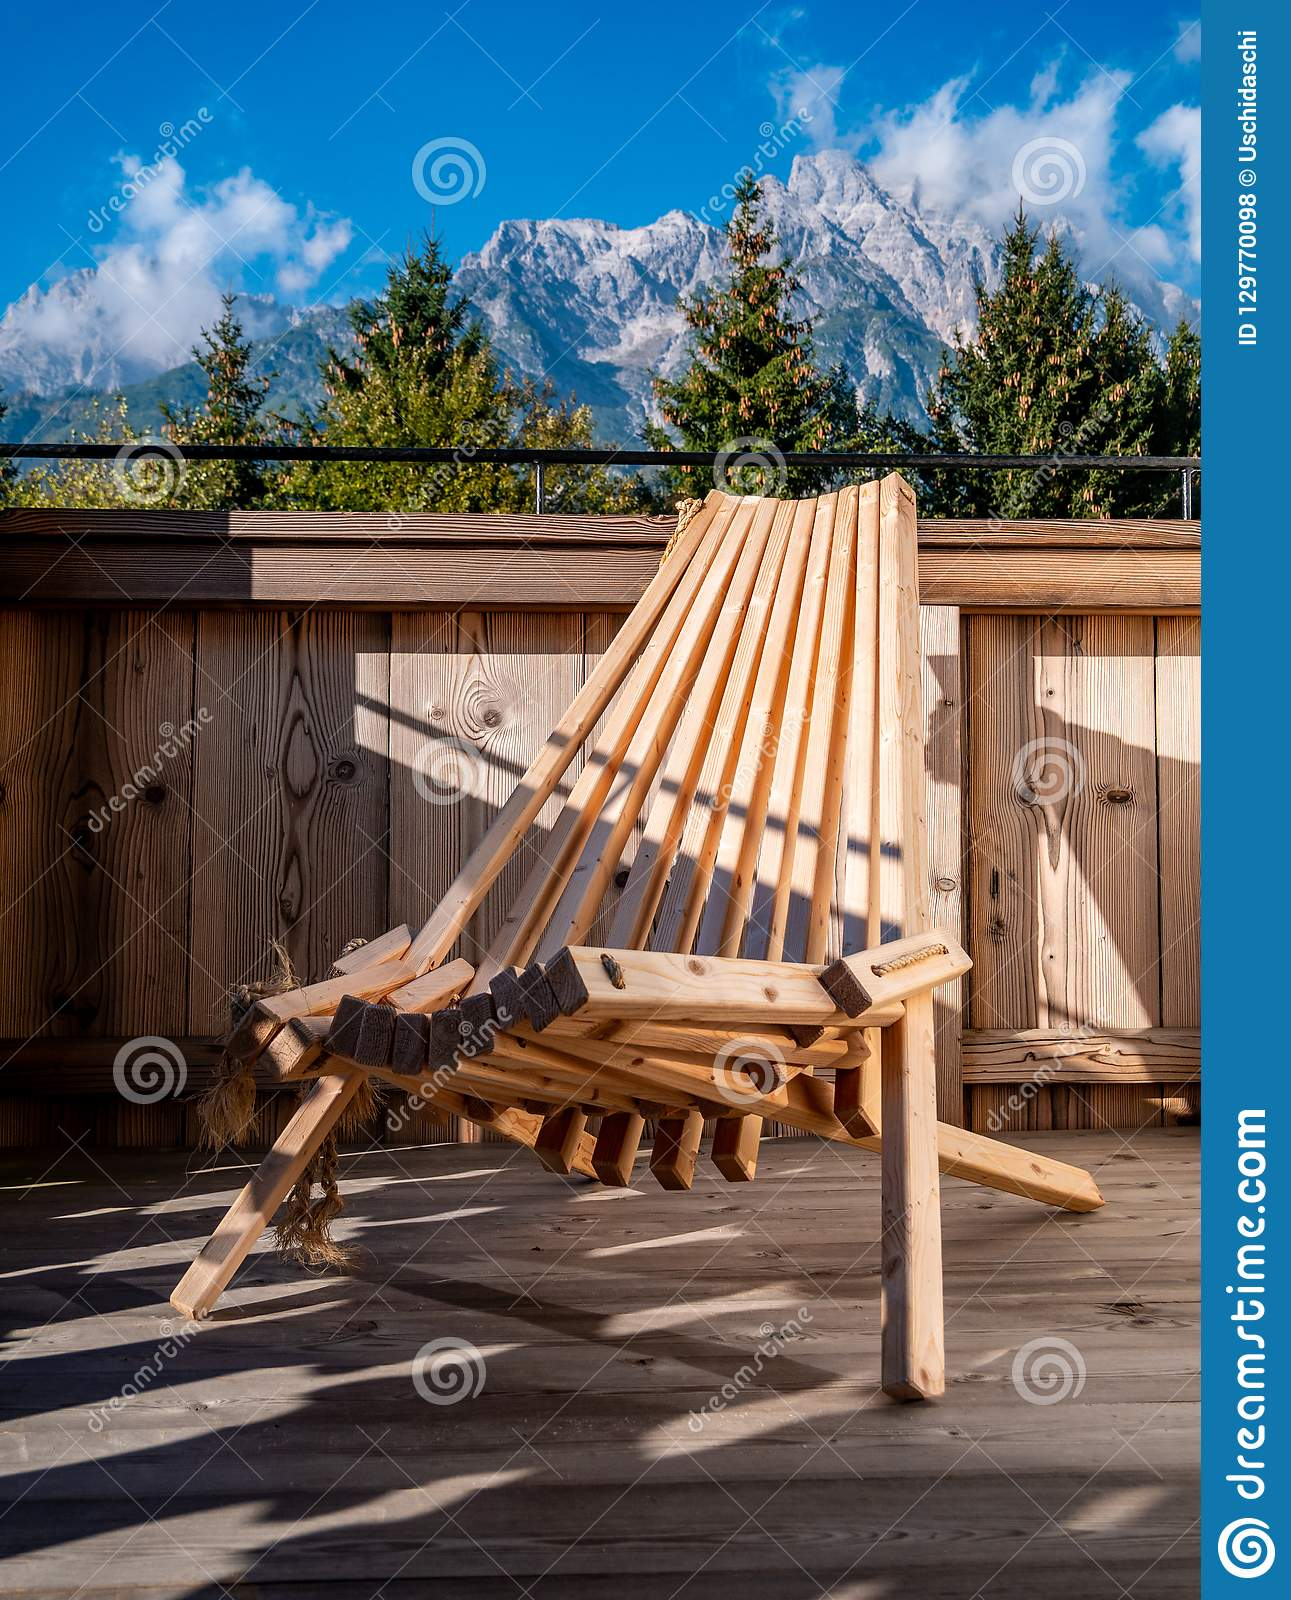 Image of wooden chair on balcony in alpine landscape